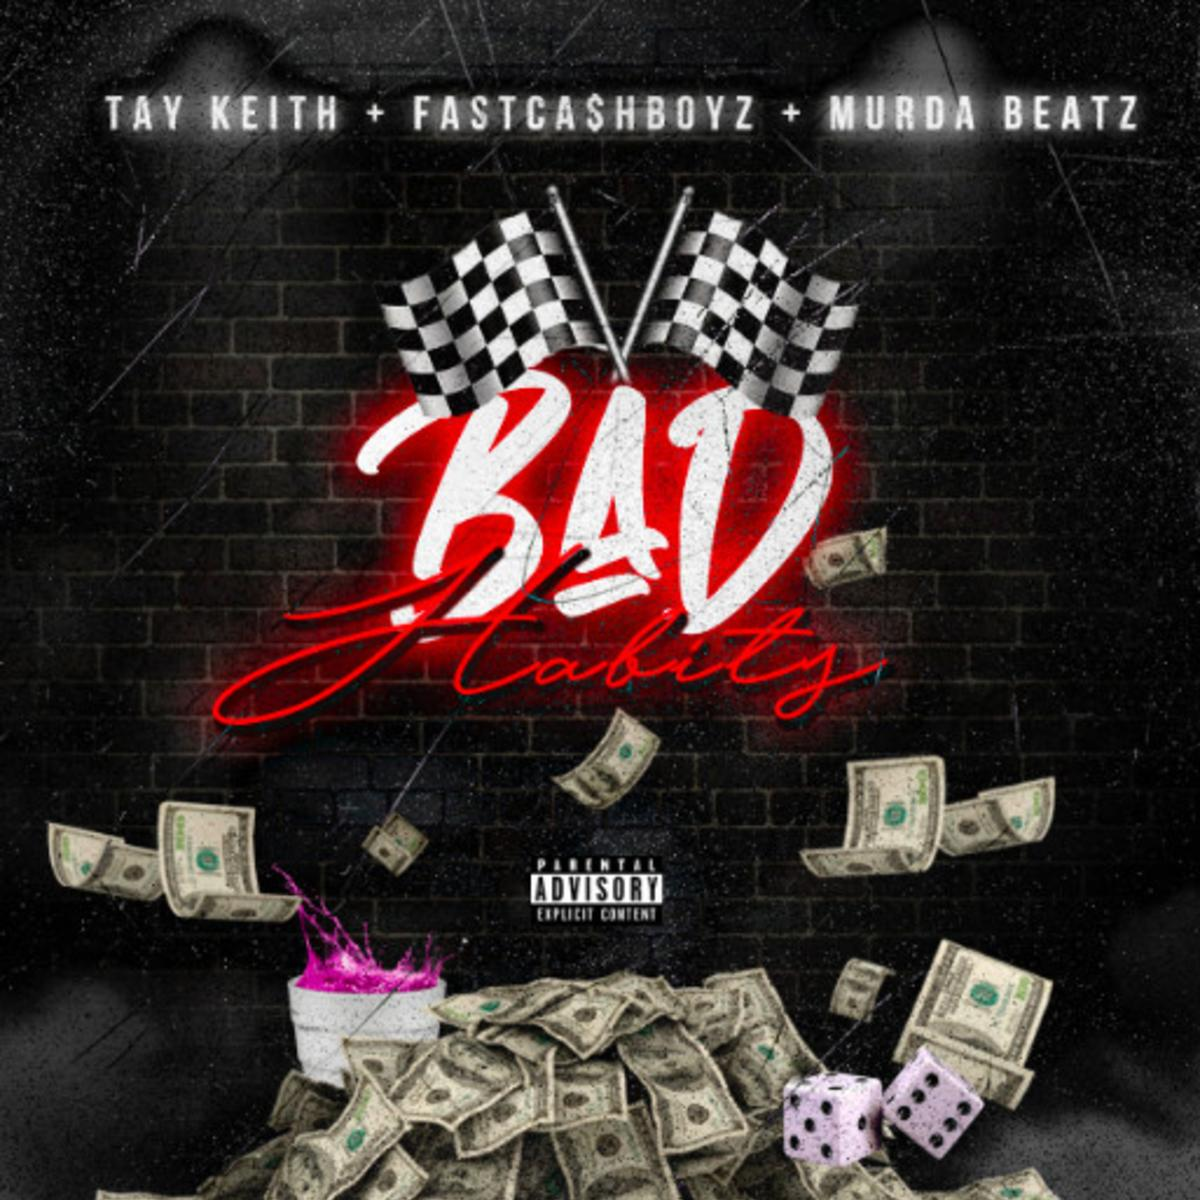 Fast Cash Entertainment/DOA/EMPIRE